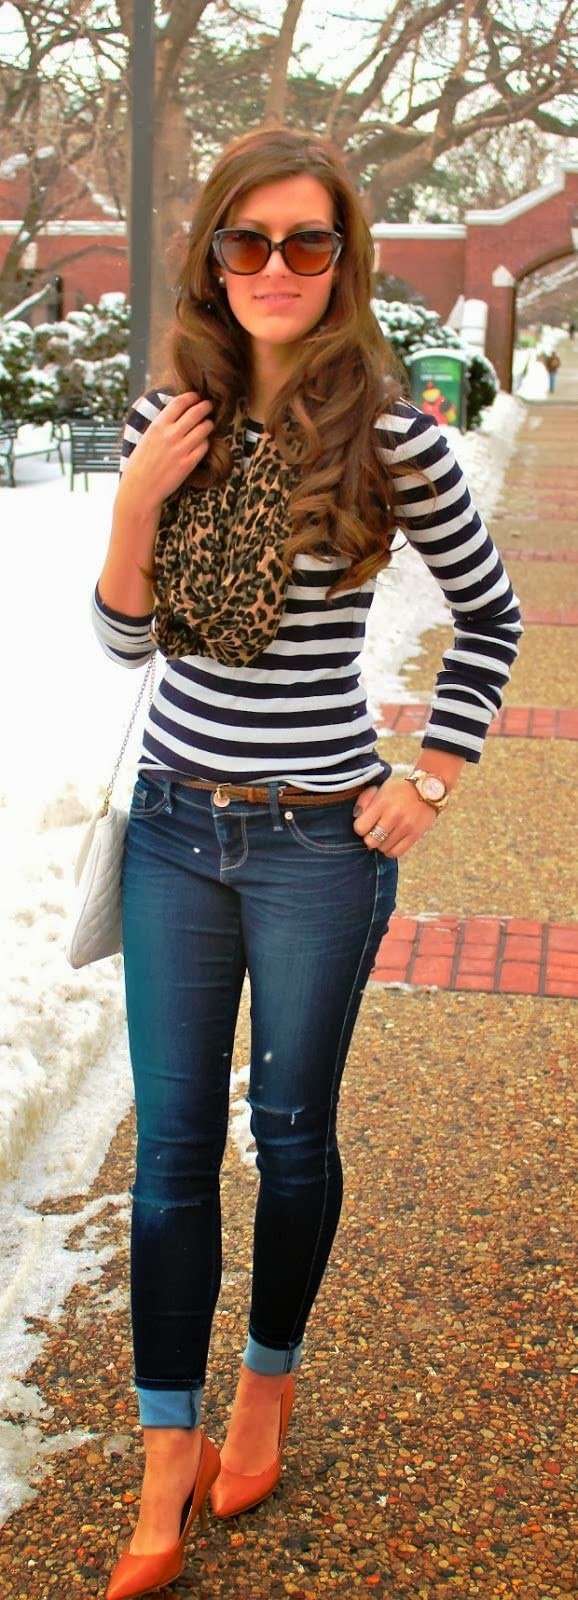 See More Winter Style With Stripes And Leopard Scarf